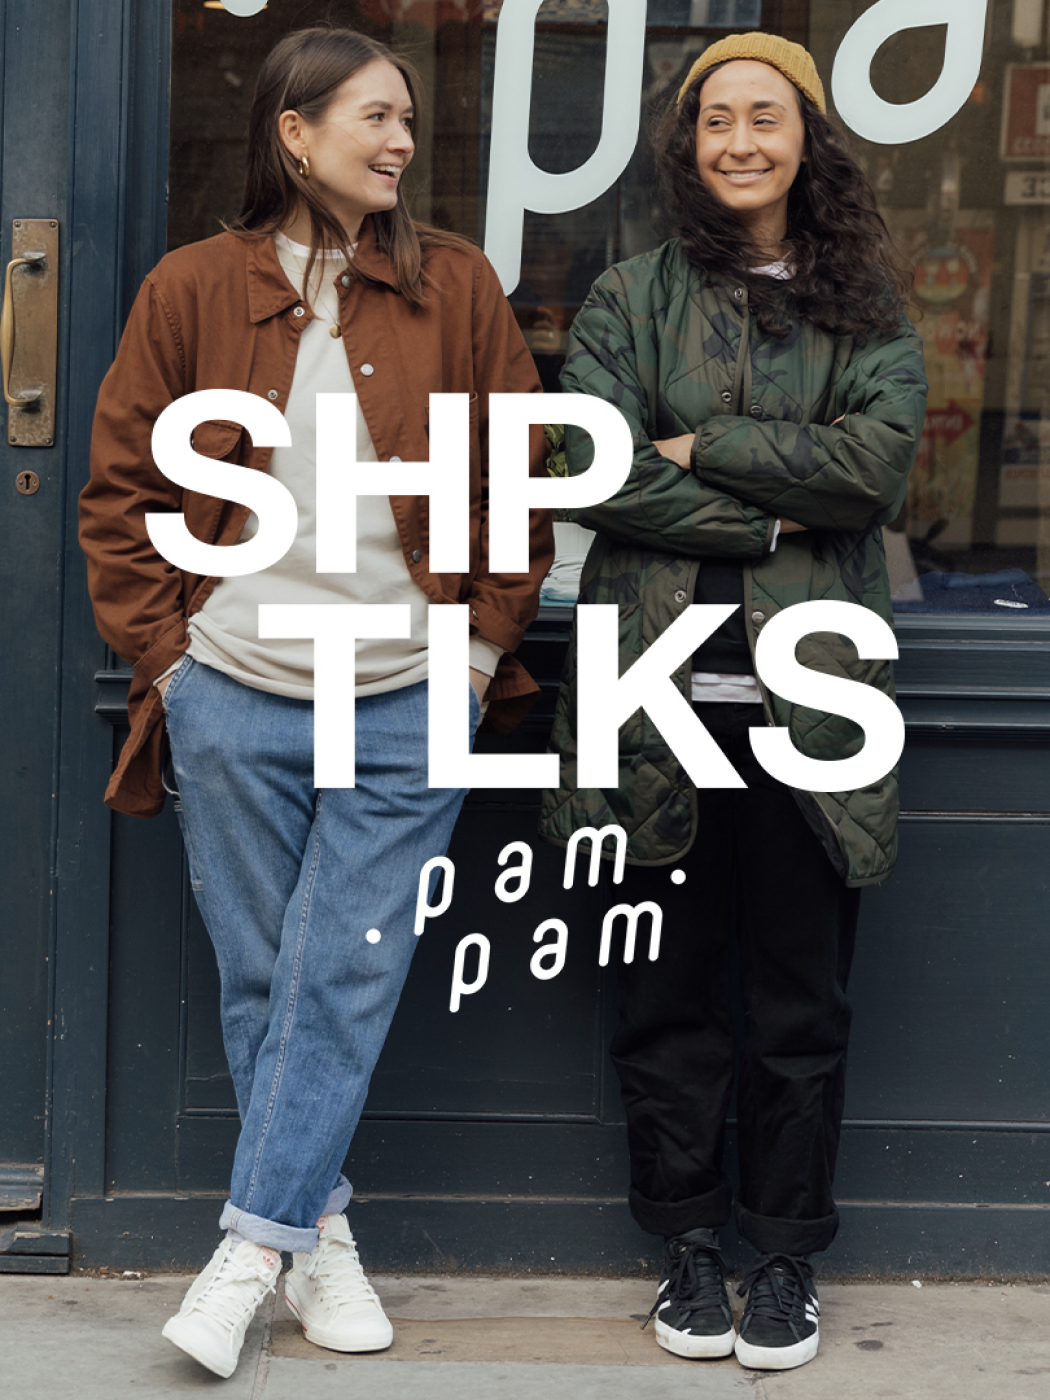 SHPTLKS episode with Pam Pam